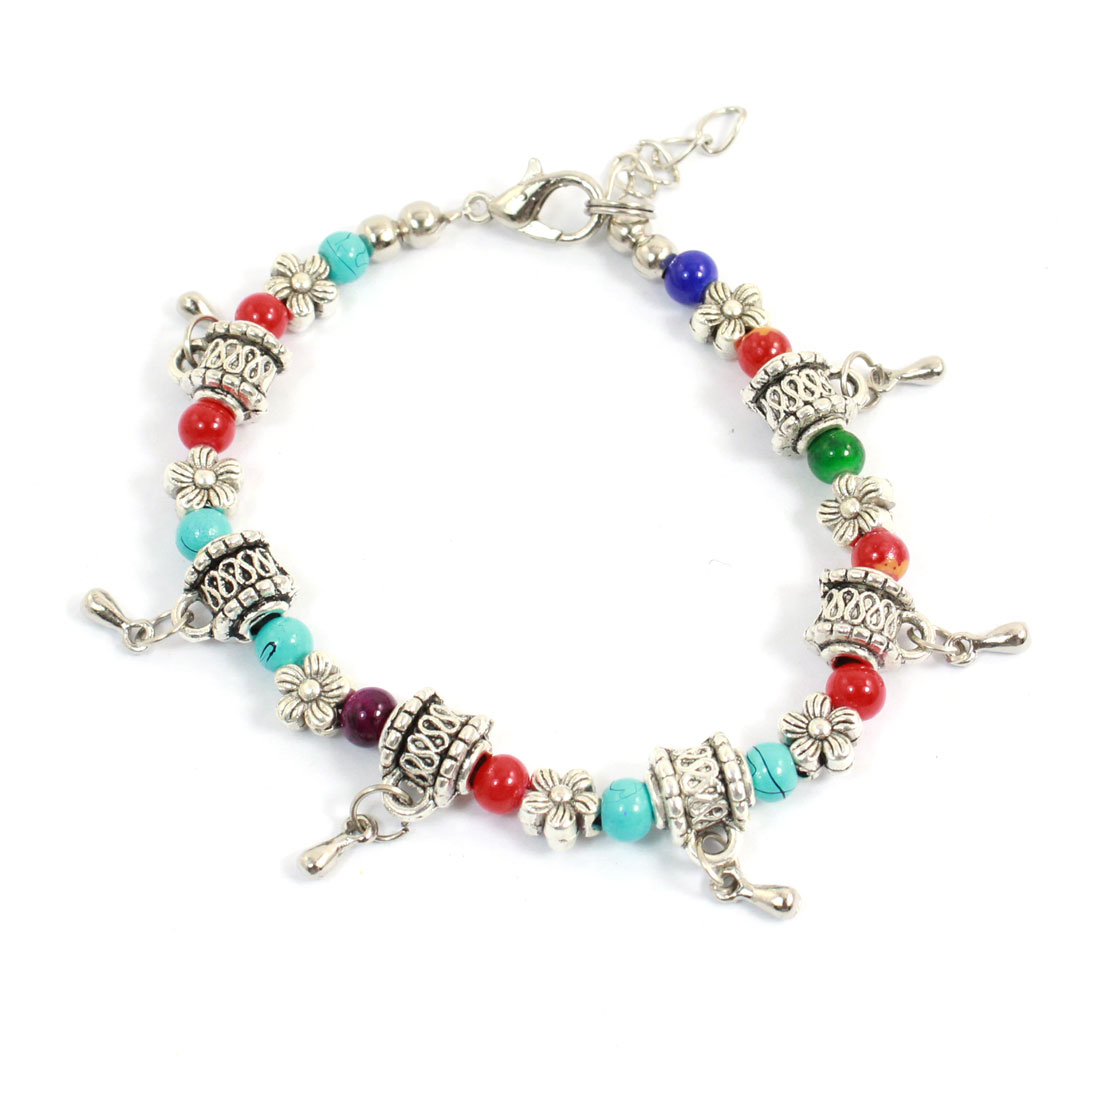 Woman Lobster Hook Flower Beads Decor Adjustable Chain Bracelet Multicolor